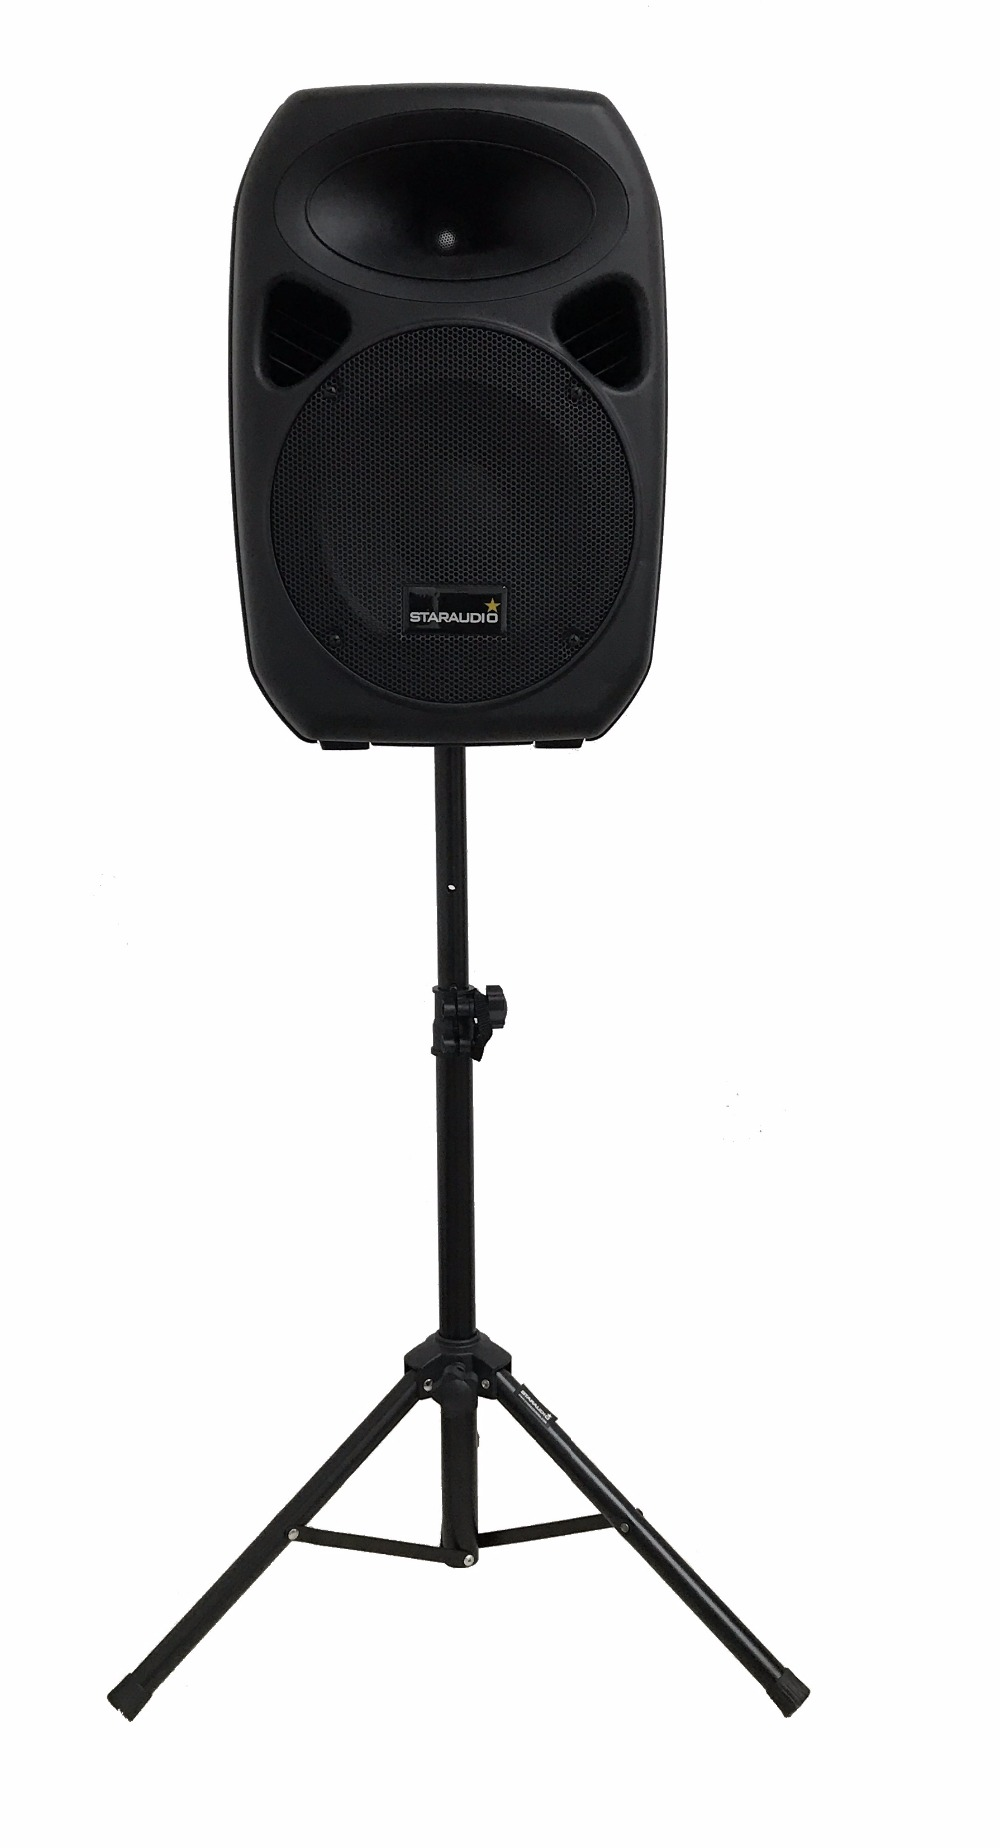 STARAUDIO 2Pcs 1500W 10″ PA DJ Speakers W/ 2 Stands 1 Powered Mixer 2 Cables 1Wired Microphone SSD-10A